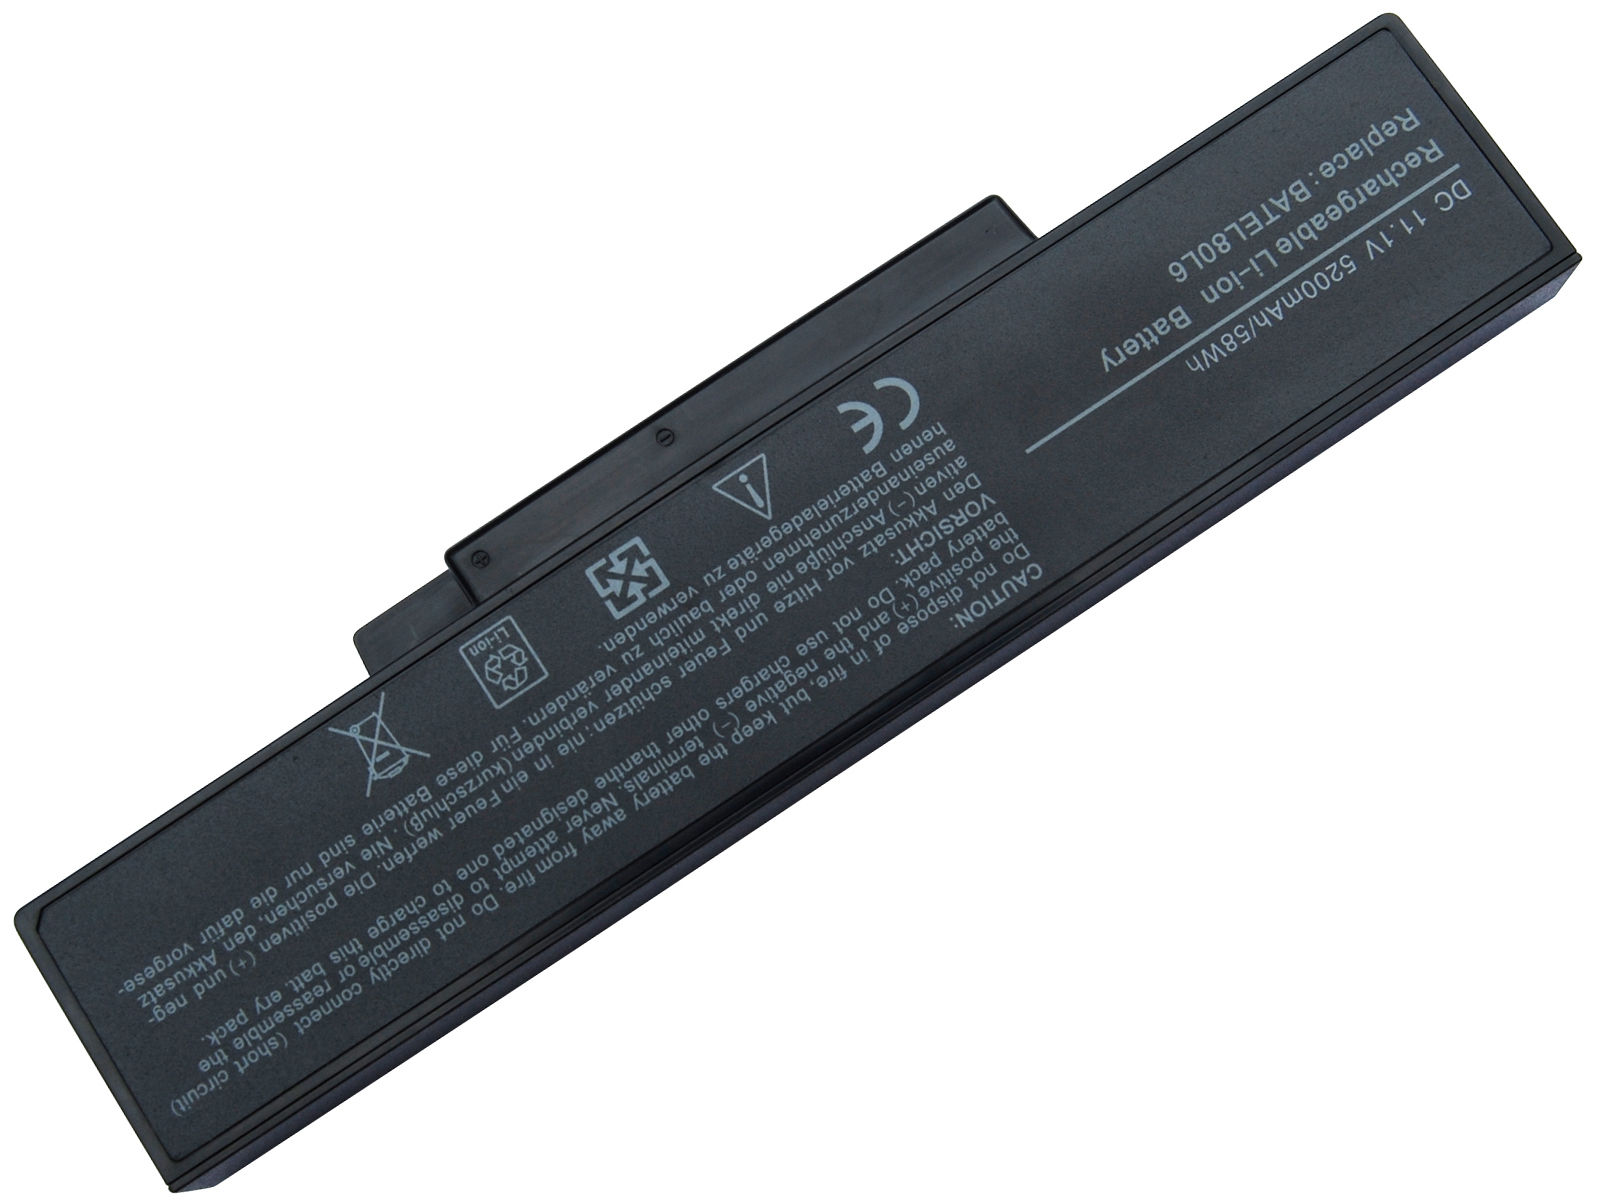 Replacement Msi VX600 Battery